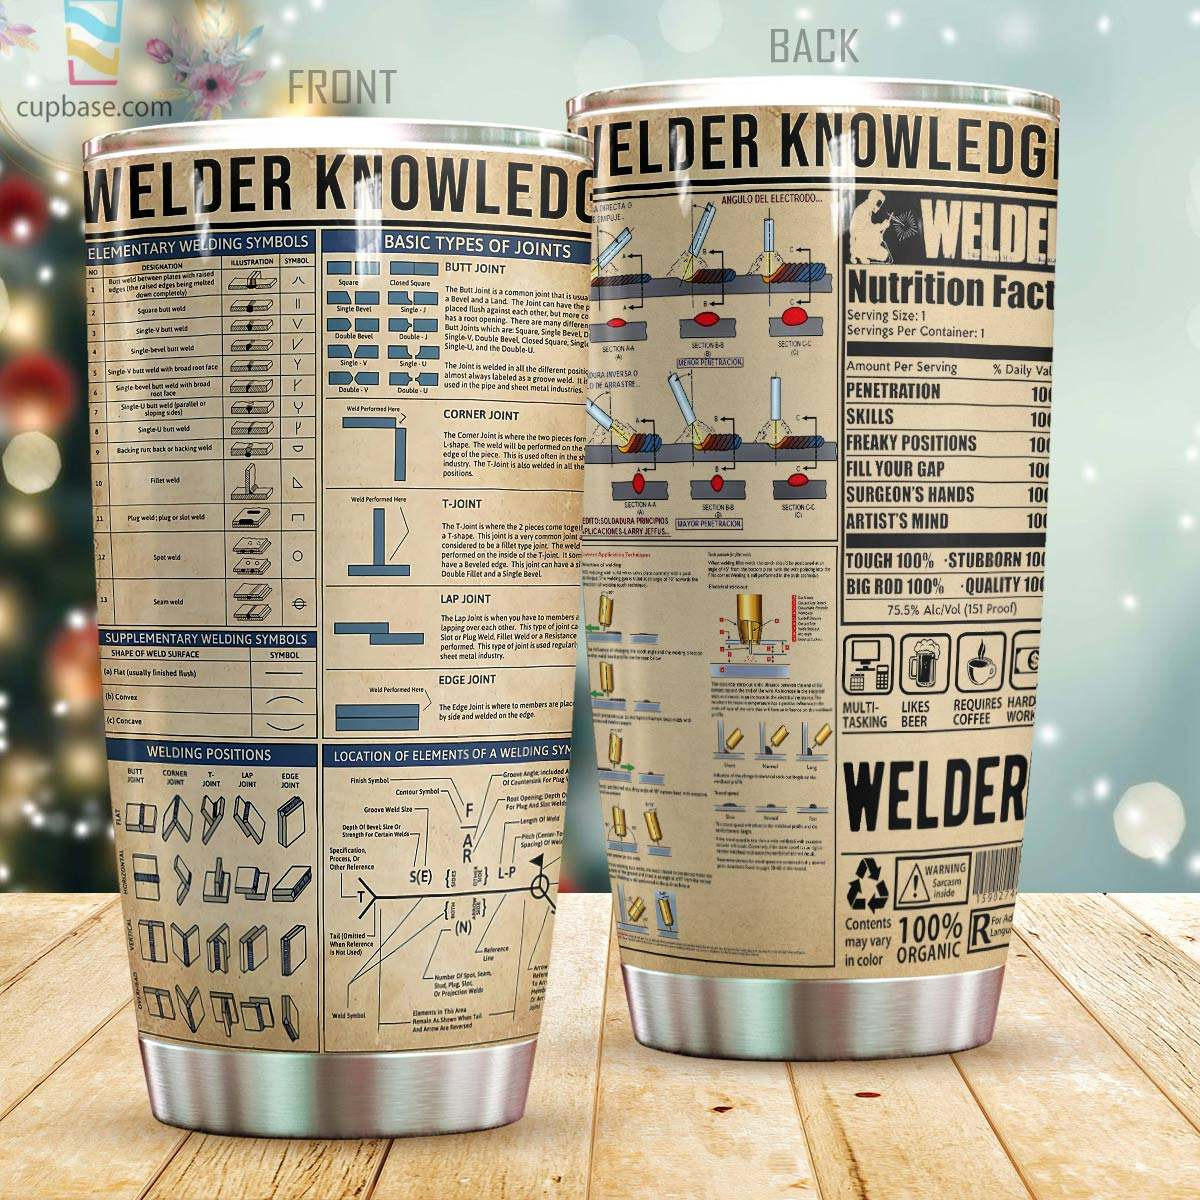 Welder knowledge all over printed tumbler 1